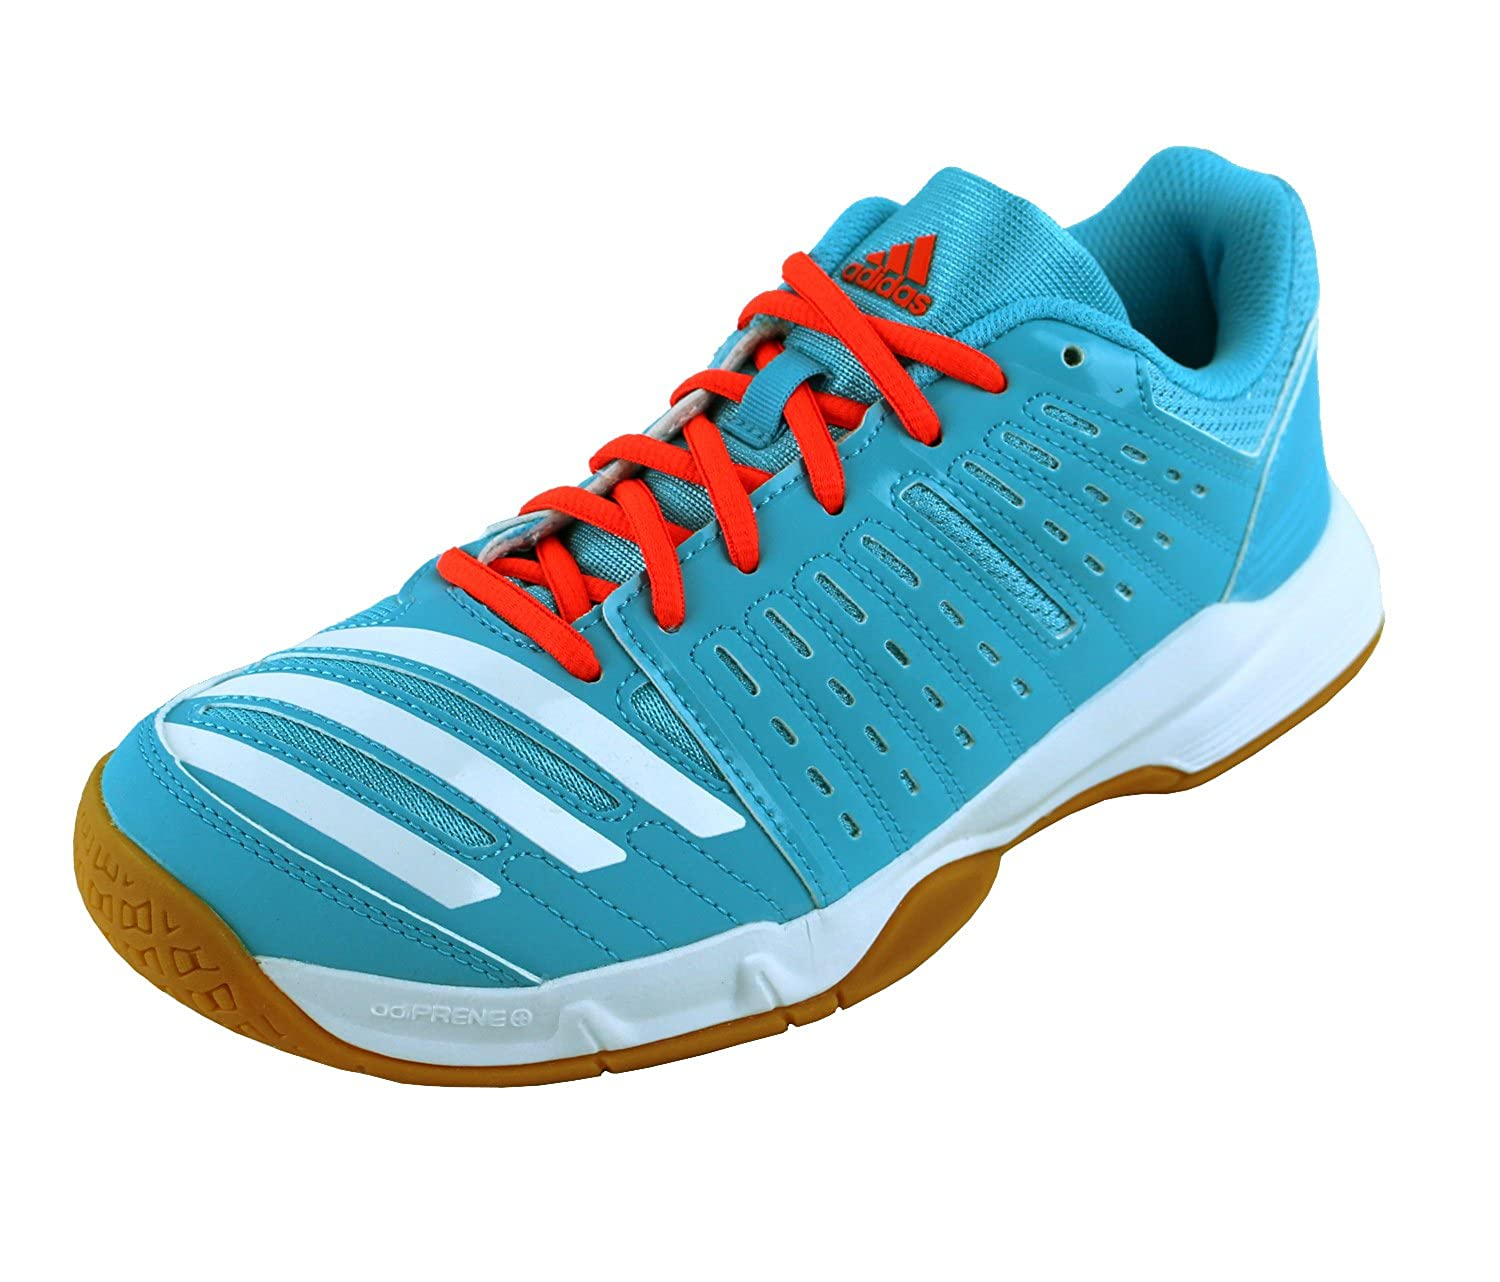 online store 65074 35af0 Amazon.com   adidas Essence 12 Women's Indoor Court Shoes for Squash  Volleyball Badminton Racquetball   Tennis & Racquet Sports